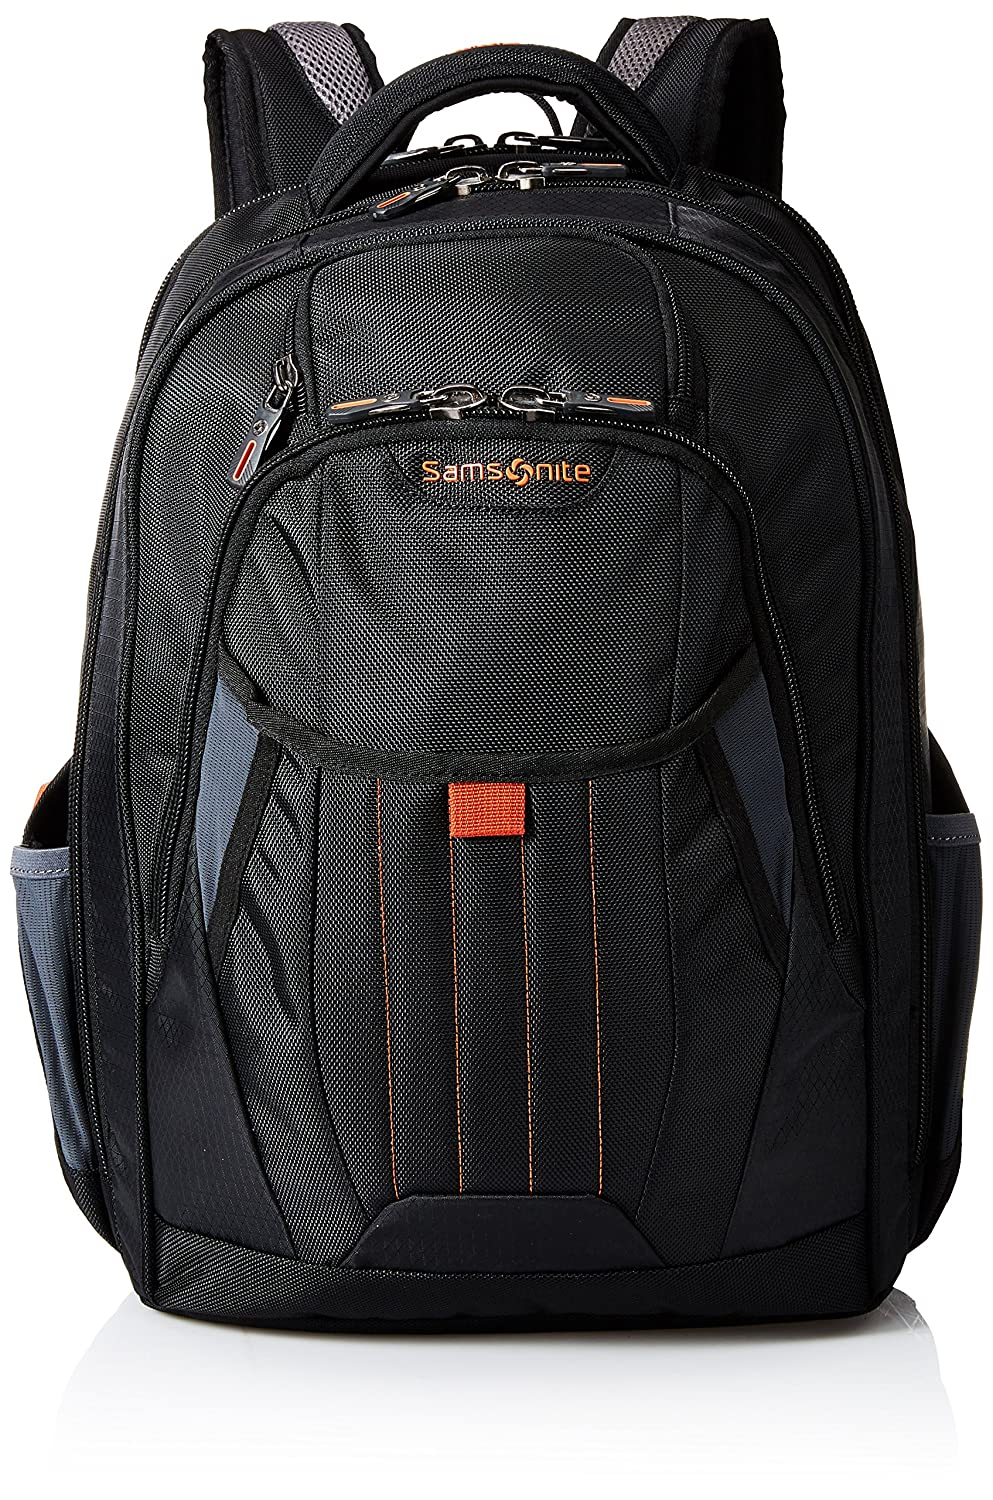 $54.58 (was $90.99) Samsonite Tectonic 2 Laptop Large Backpack, Black/Orange, International Carry-On